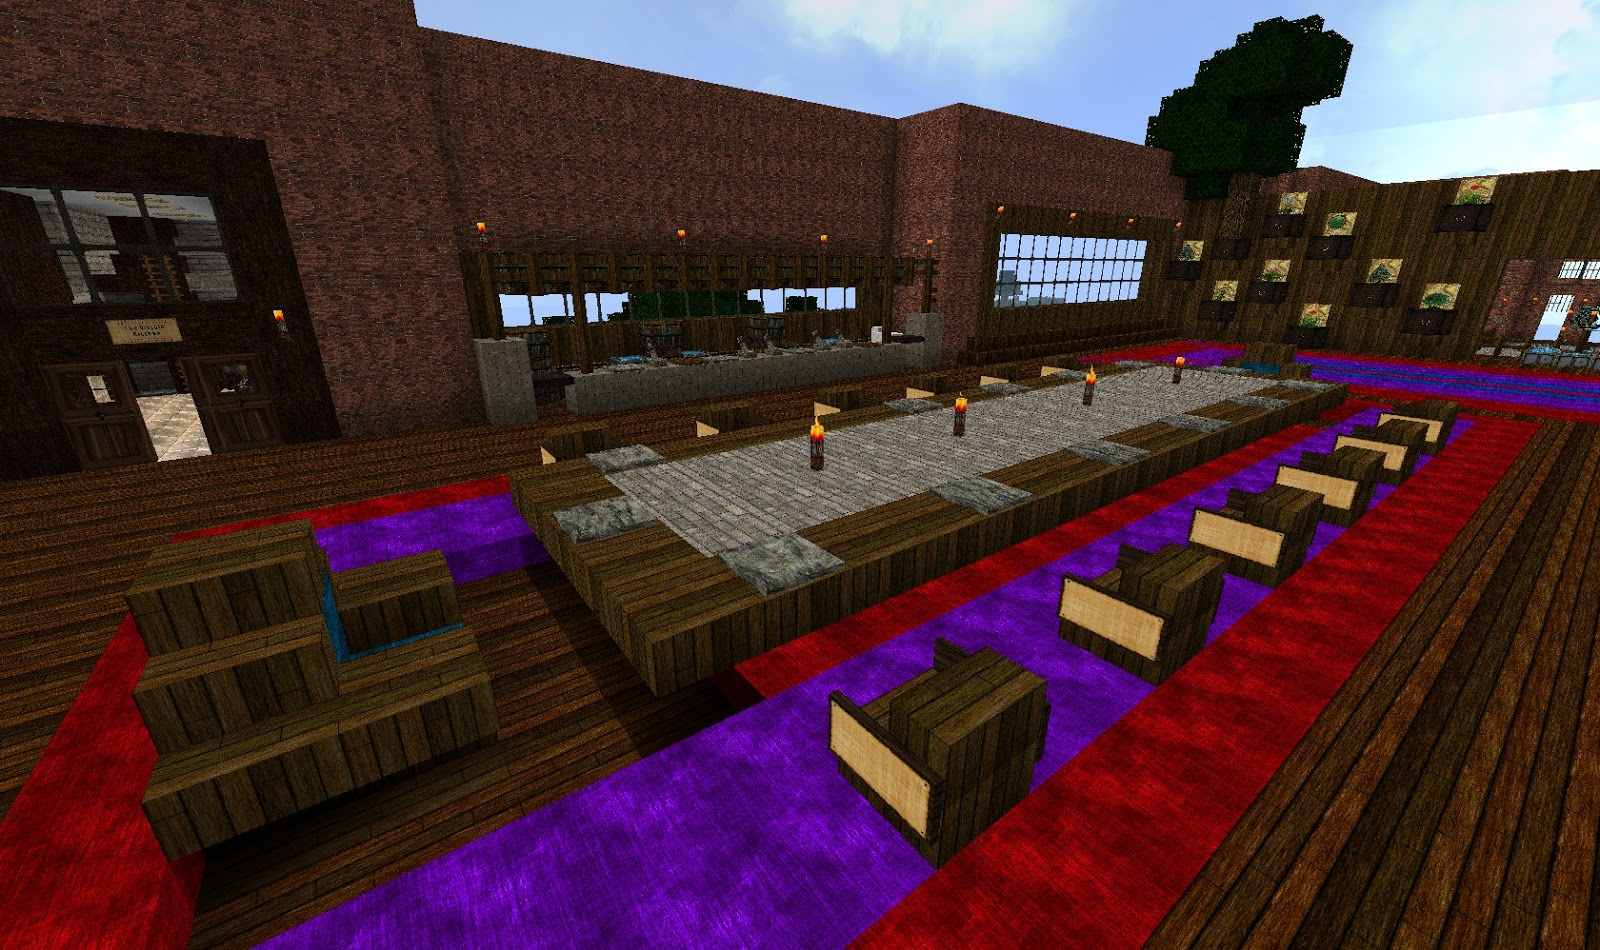 JD's Gaming Blog: Minecraft Creations: The Brick Mansion ...